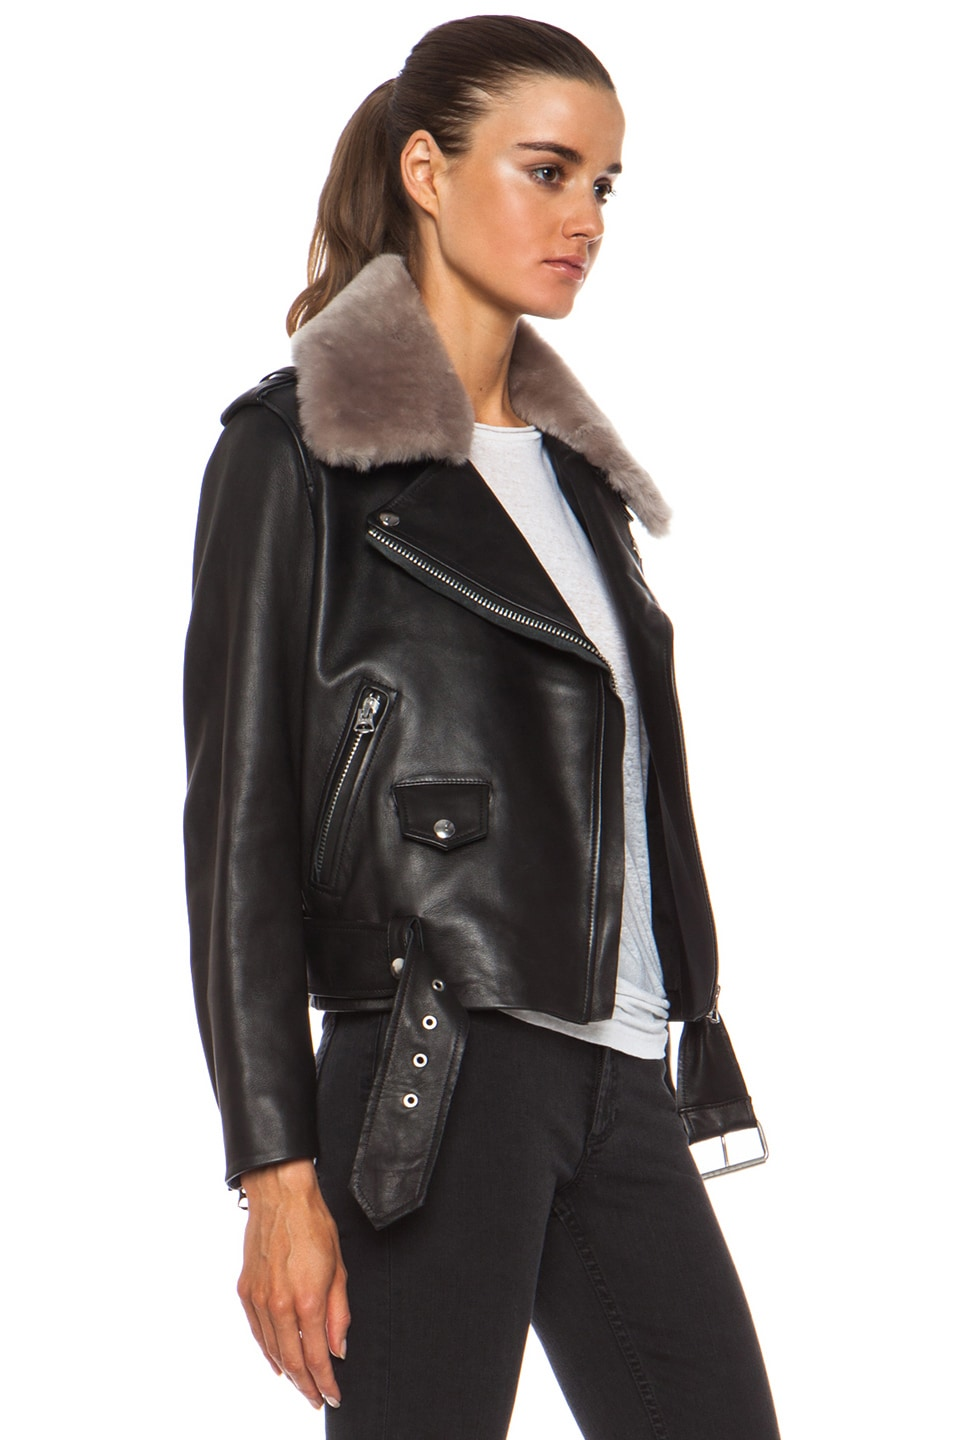 In Shearling Mape Studios Acne Black Stone amp; Fwrd Jacket Leather wxCXEEqTZ